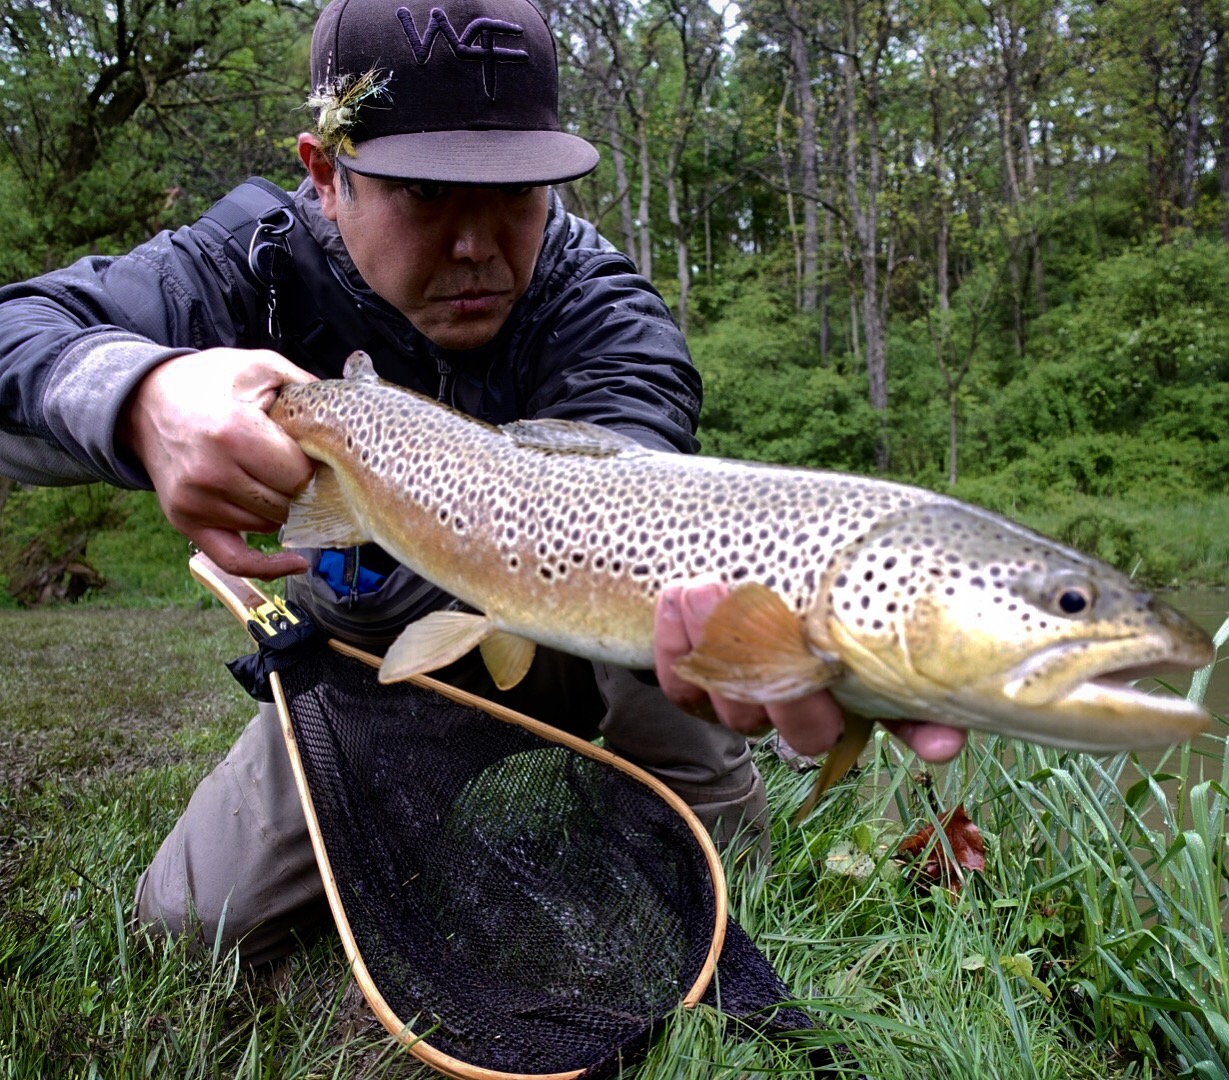 Early may fly fishing 2017 spruce creek highlights for Pa fishing seasons and limits 2017